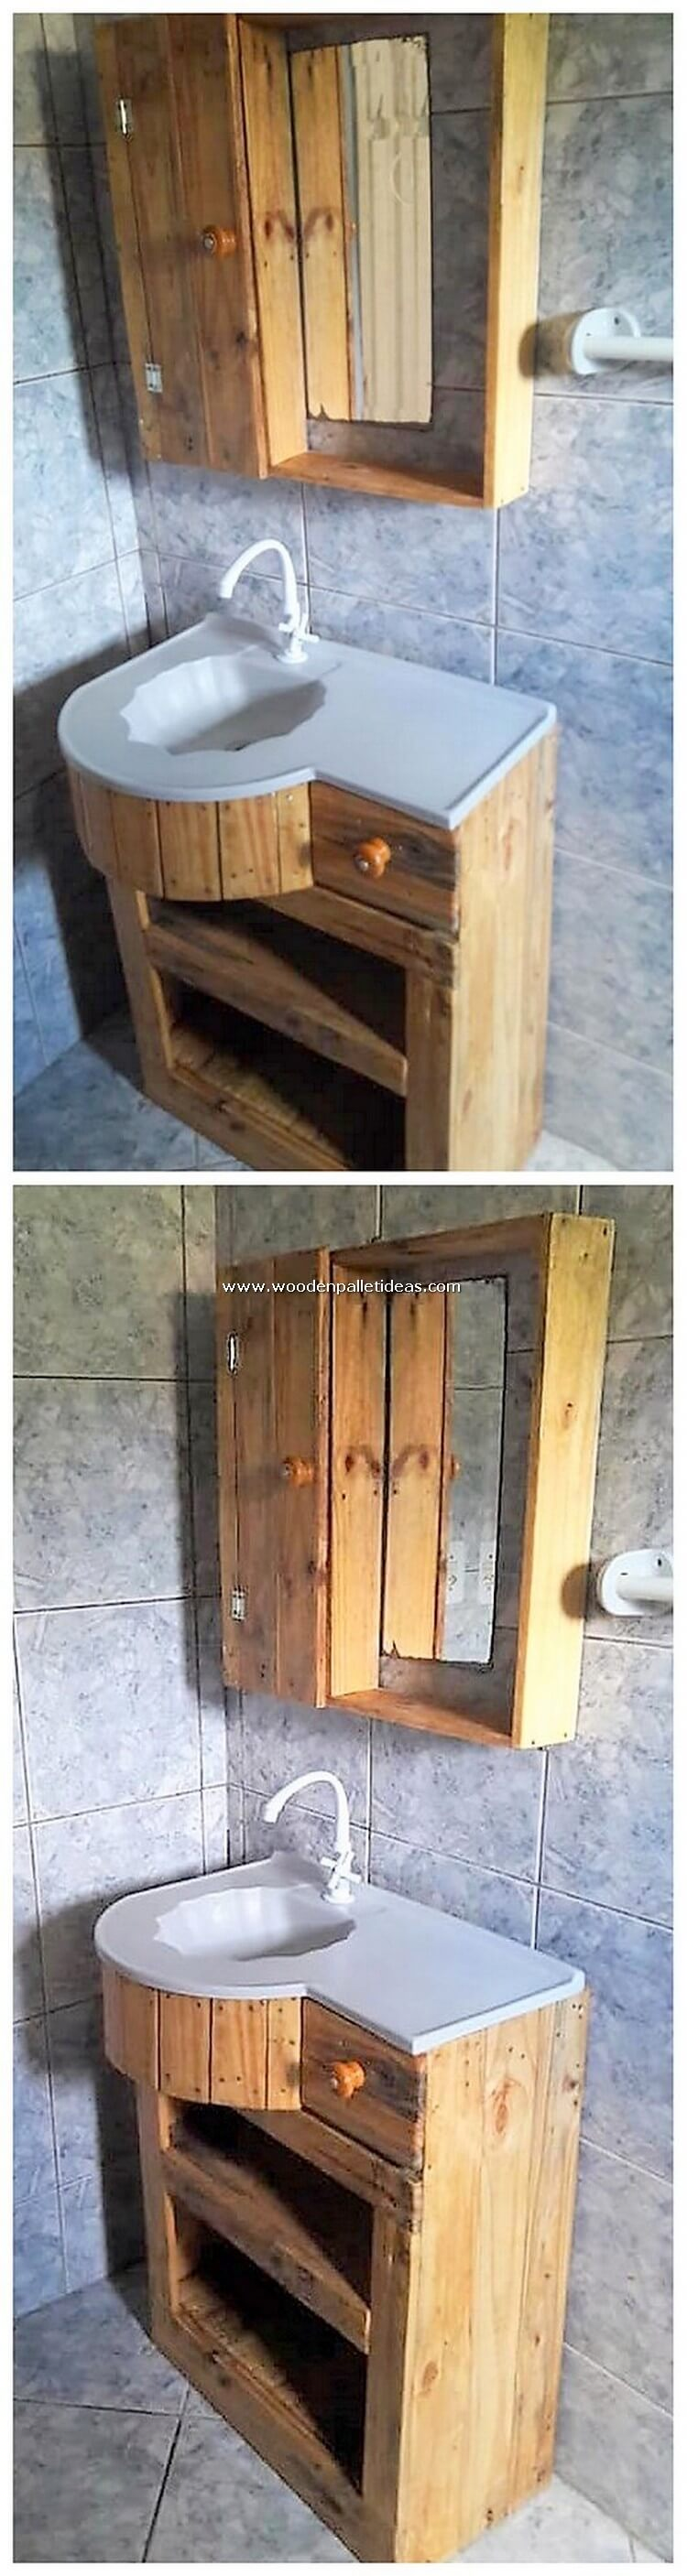 Pallet Bathroom Sink and Cabinet